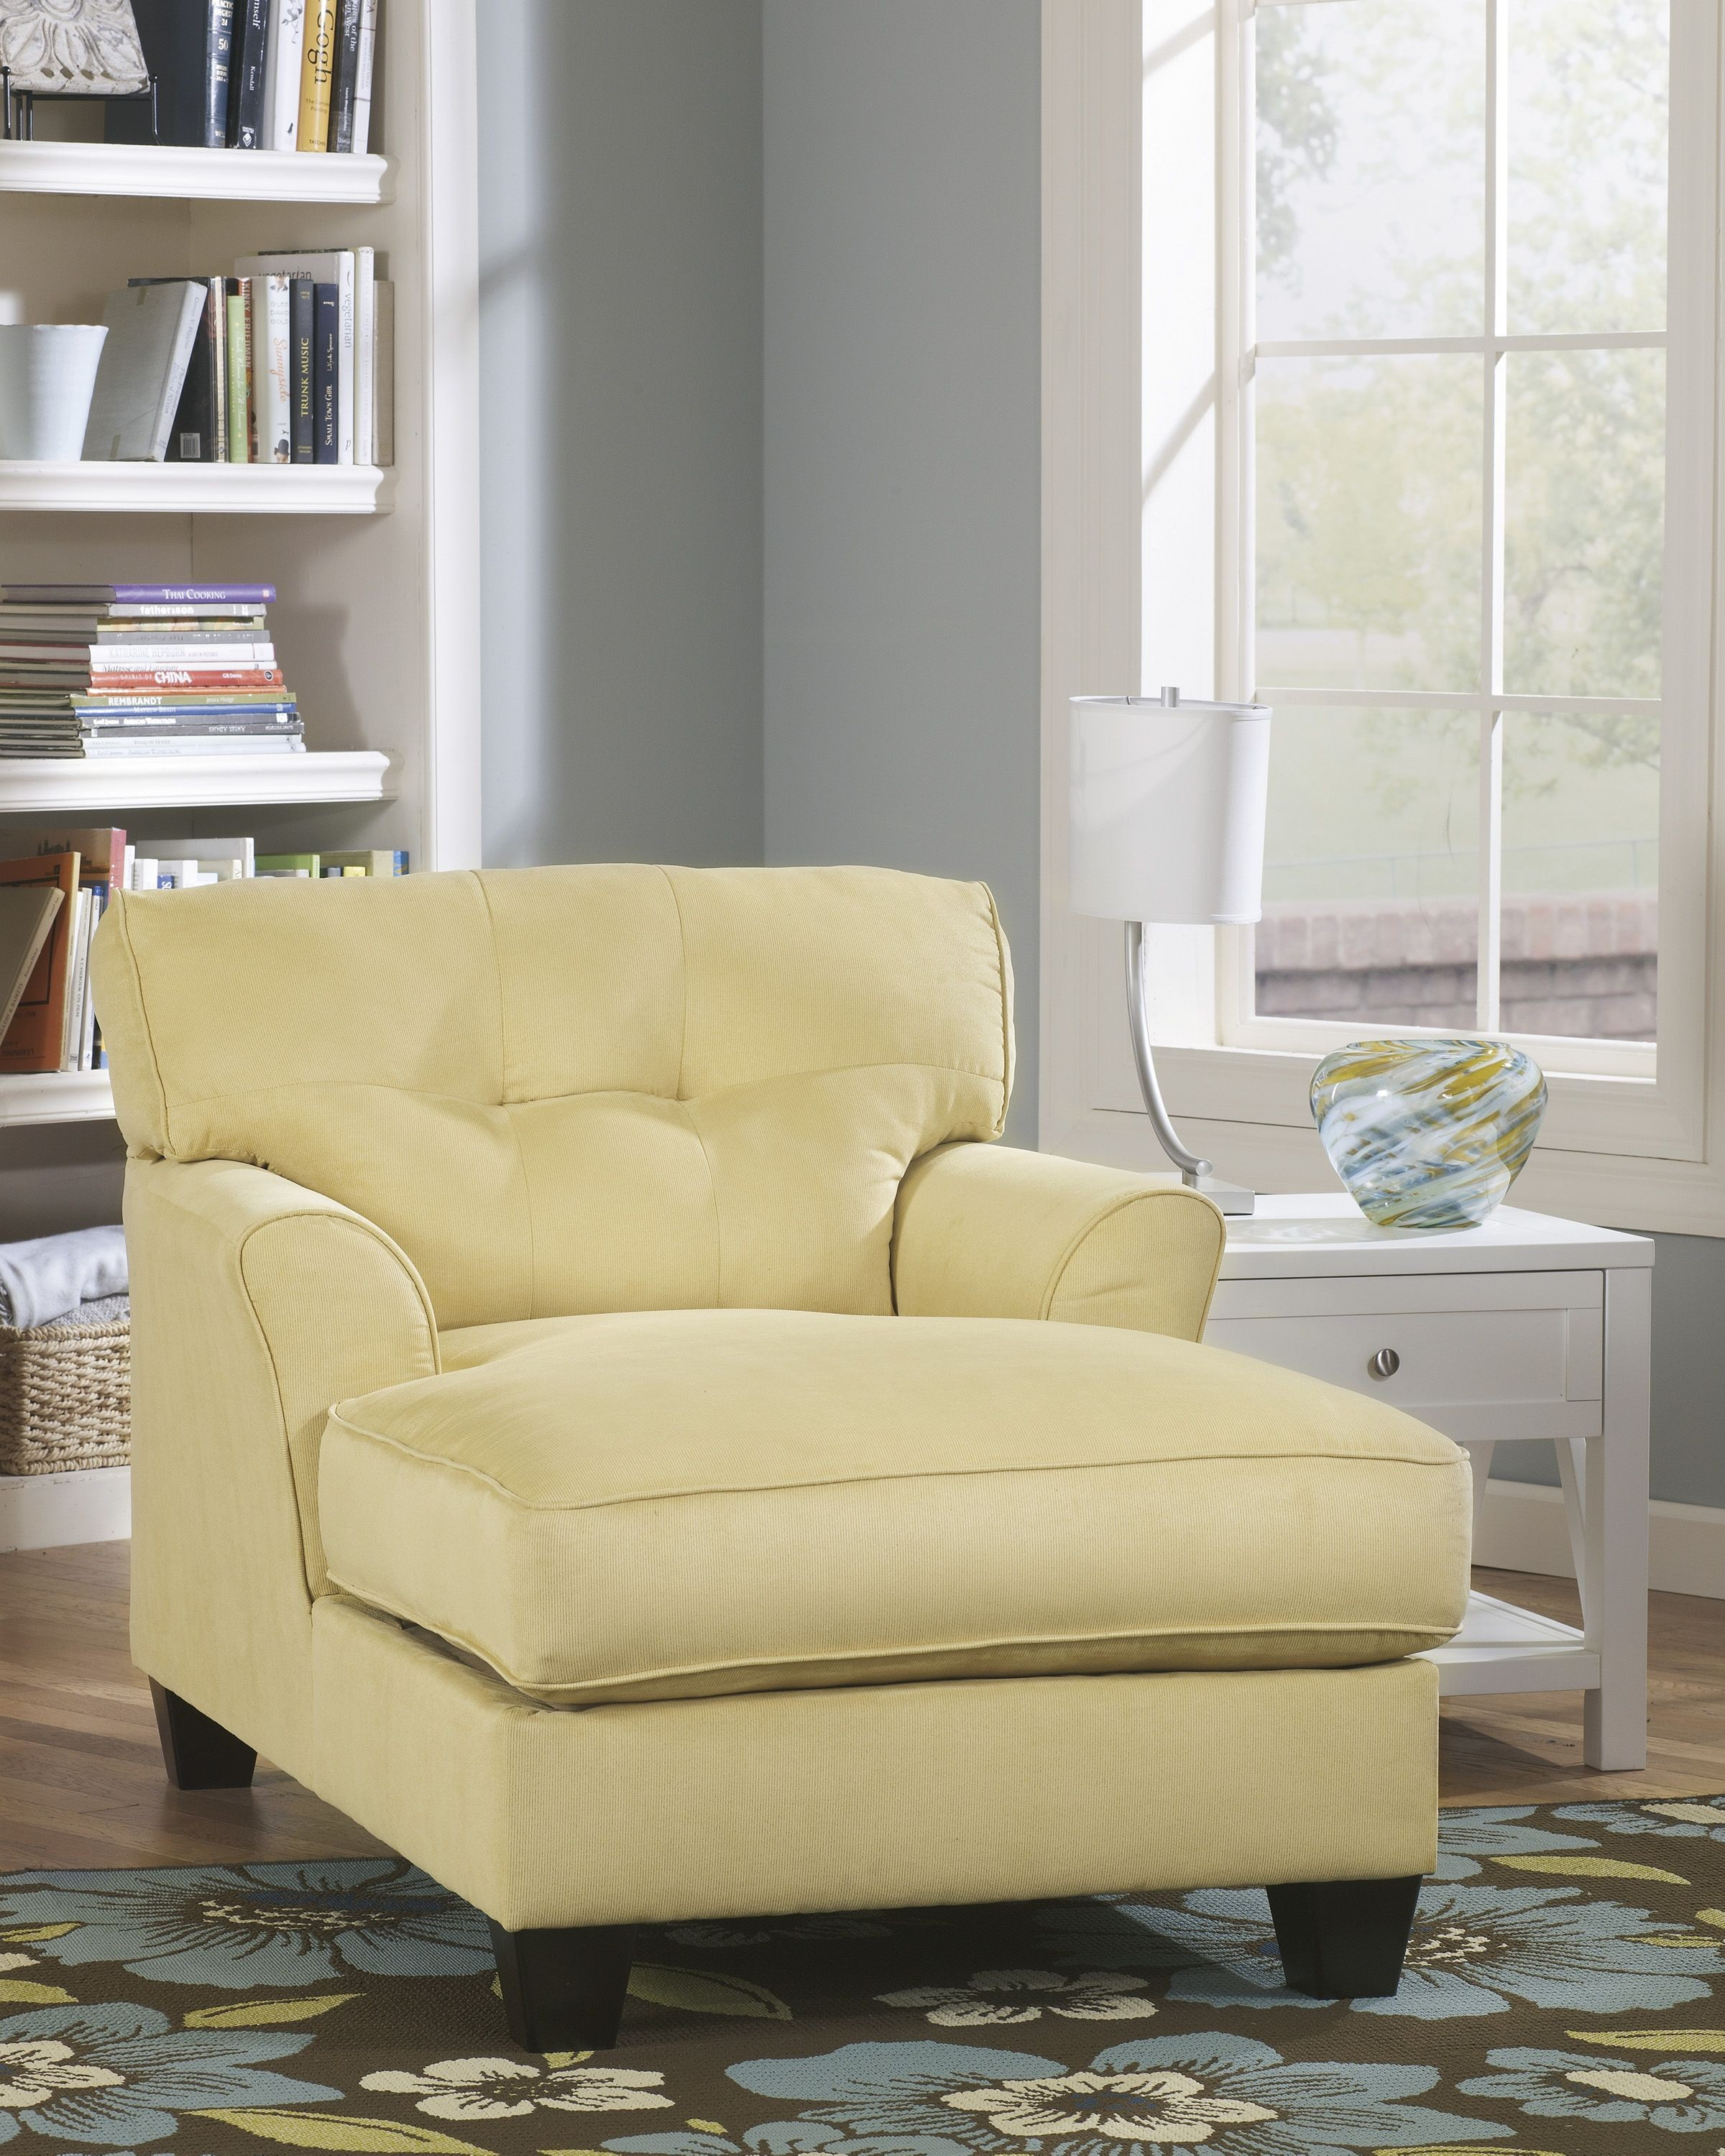 Kylee goldenrod chaise ashley furniture 6640115 living for Ashley kylee chaise lounge